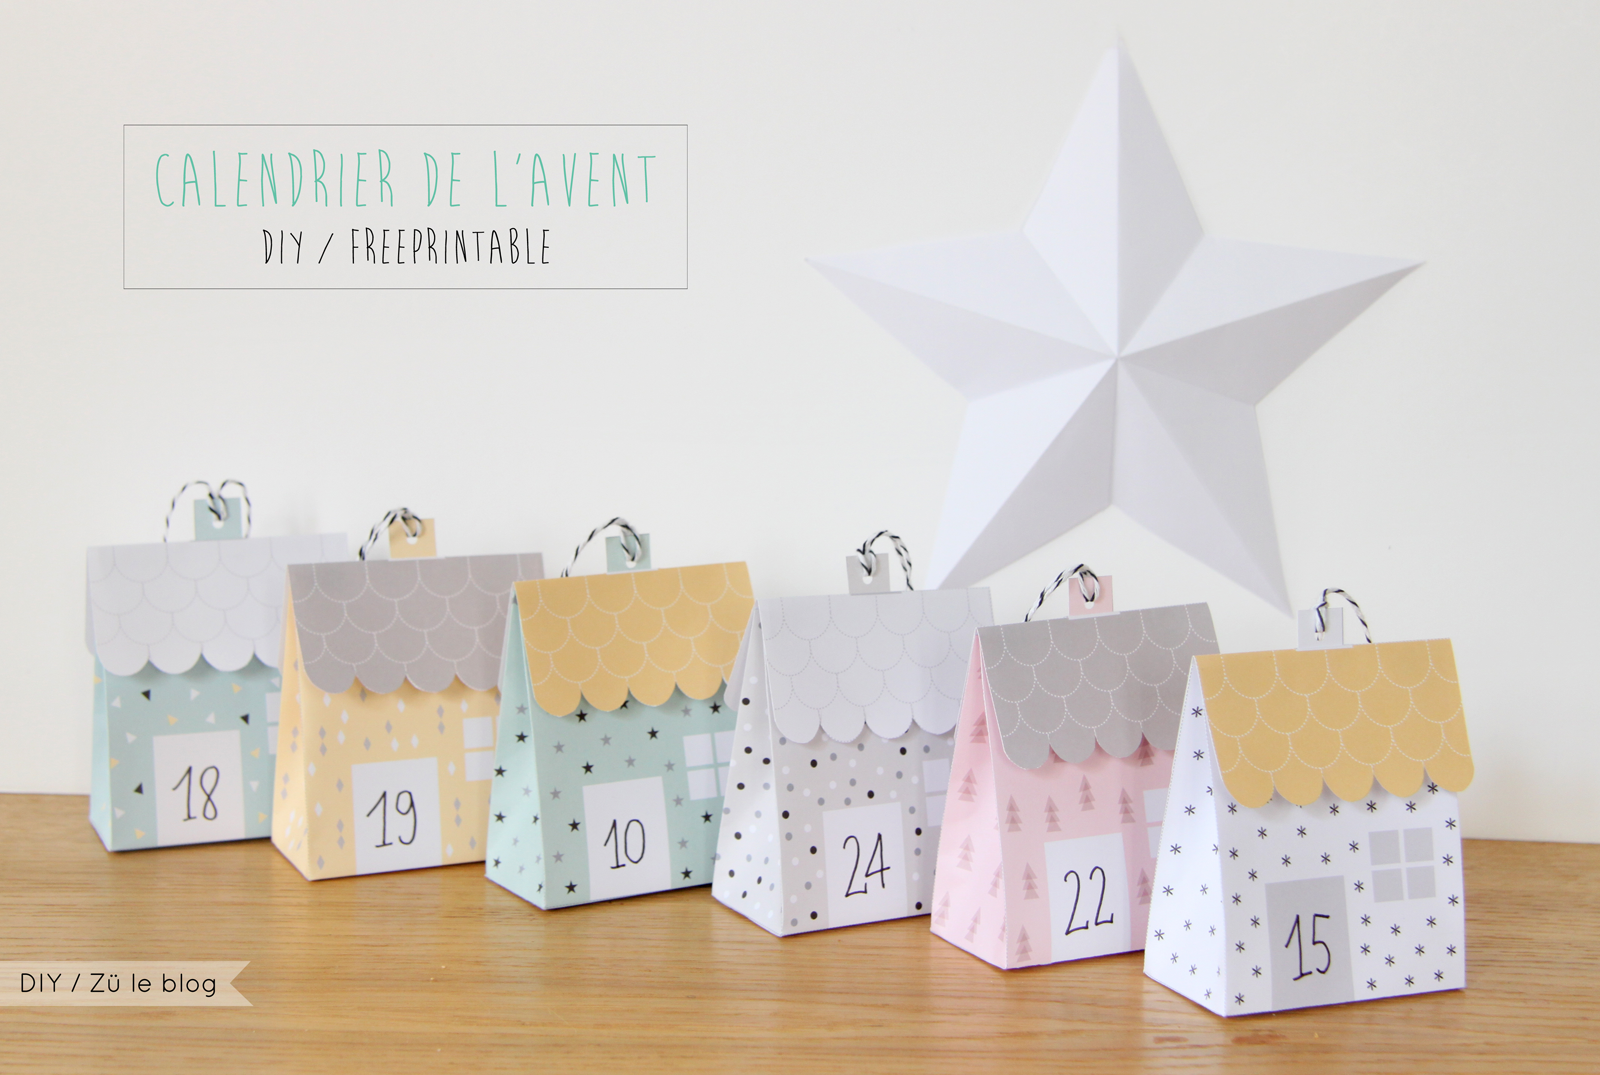 diy calendrier de l 39 avent petites maisons advent calenders advent calendars and free printable. Black Bedroom Furniture Sets. Home Design Ideas